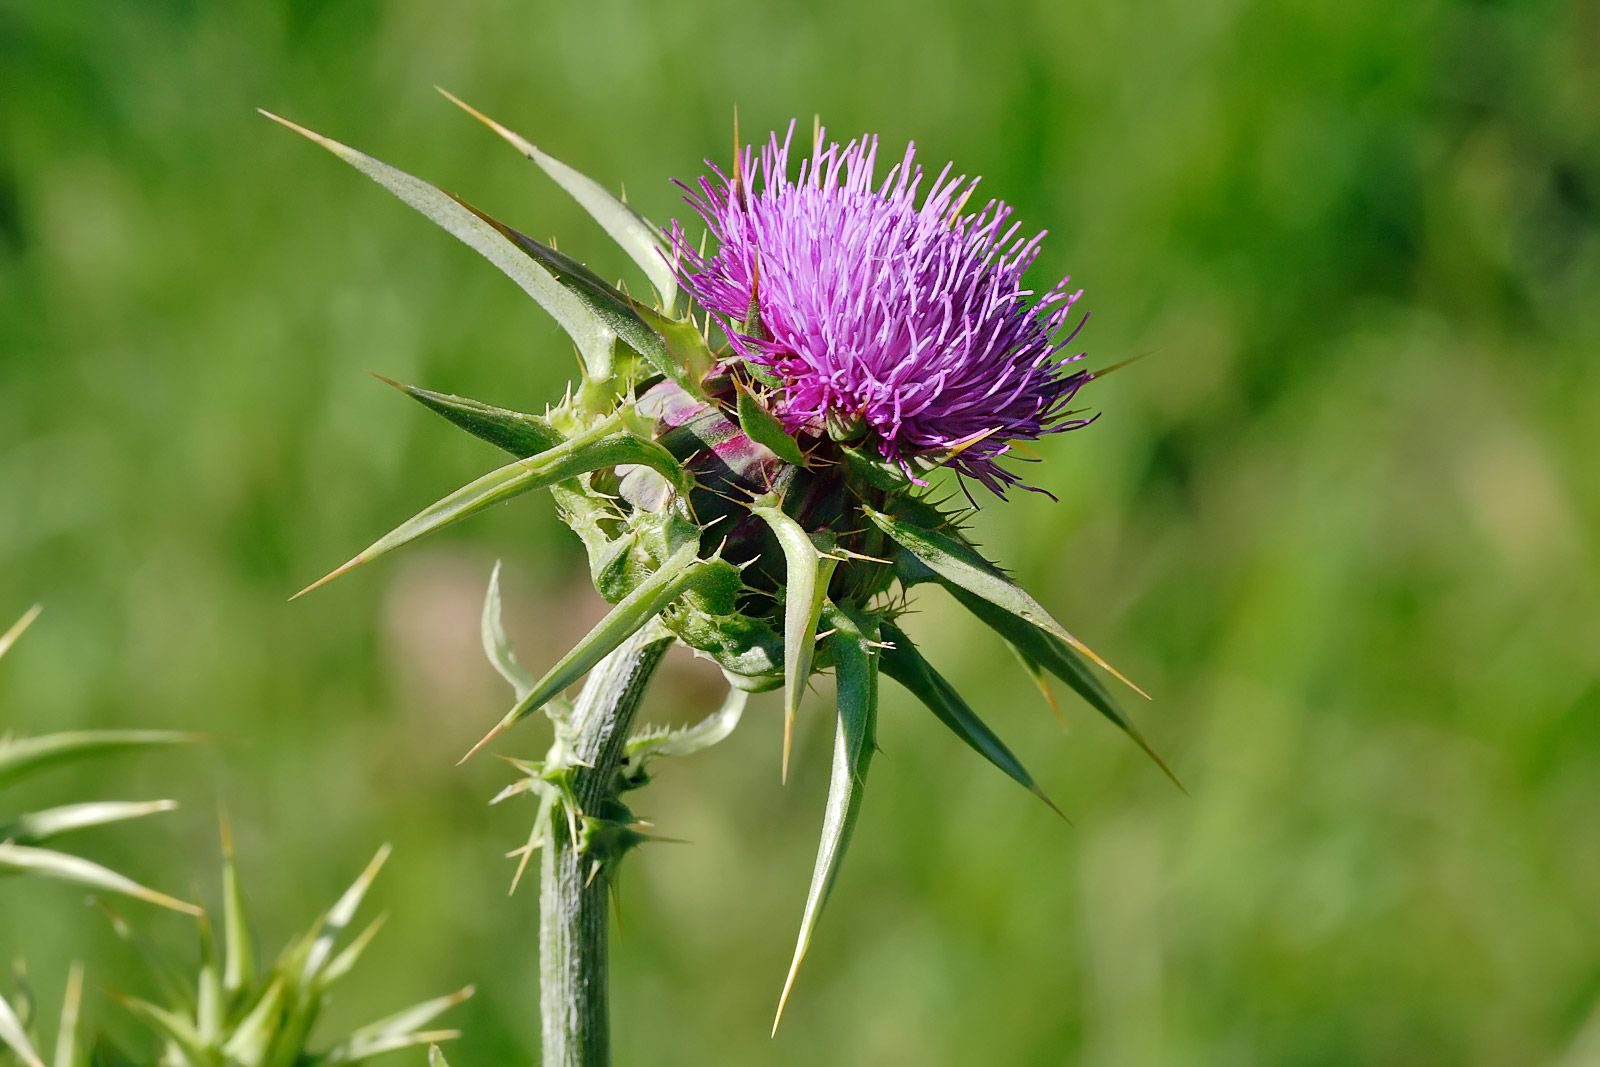 File:Milk thistle flowerhead.jpg - Wikipedia, the free encyclopedia